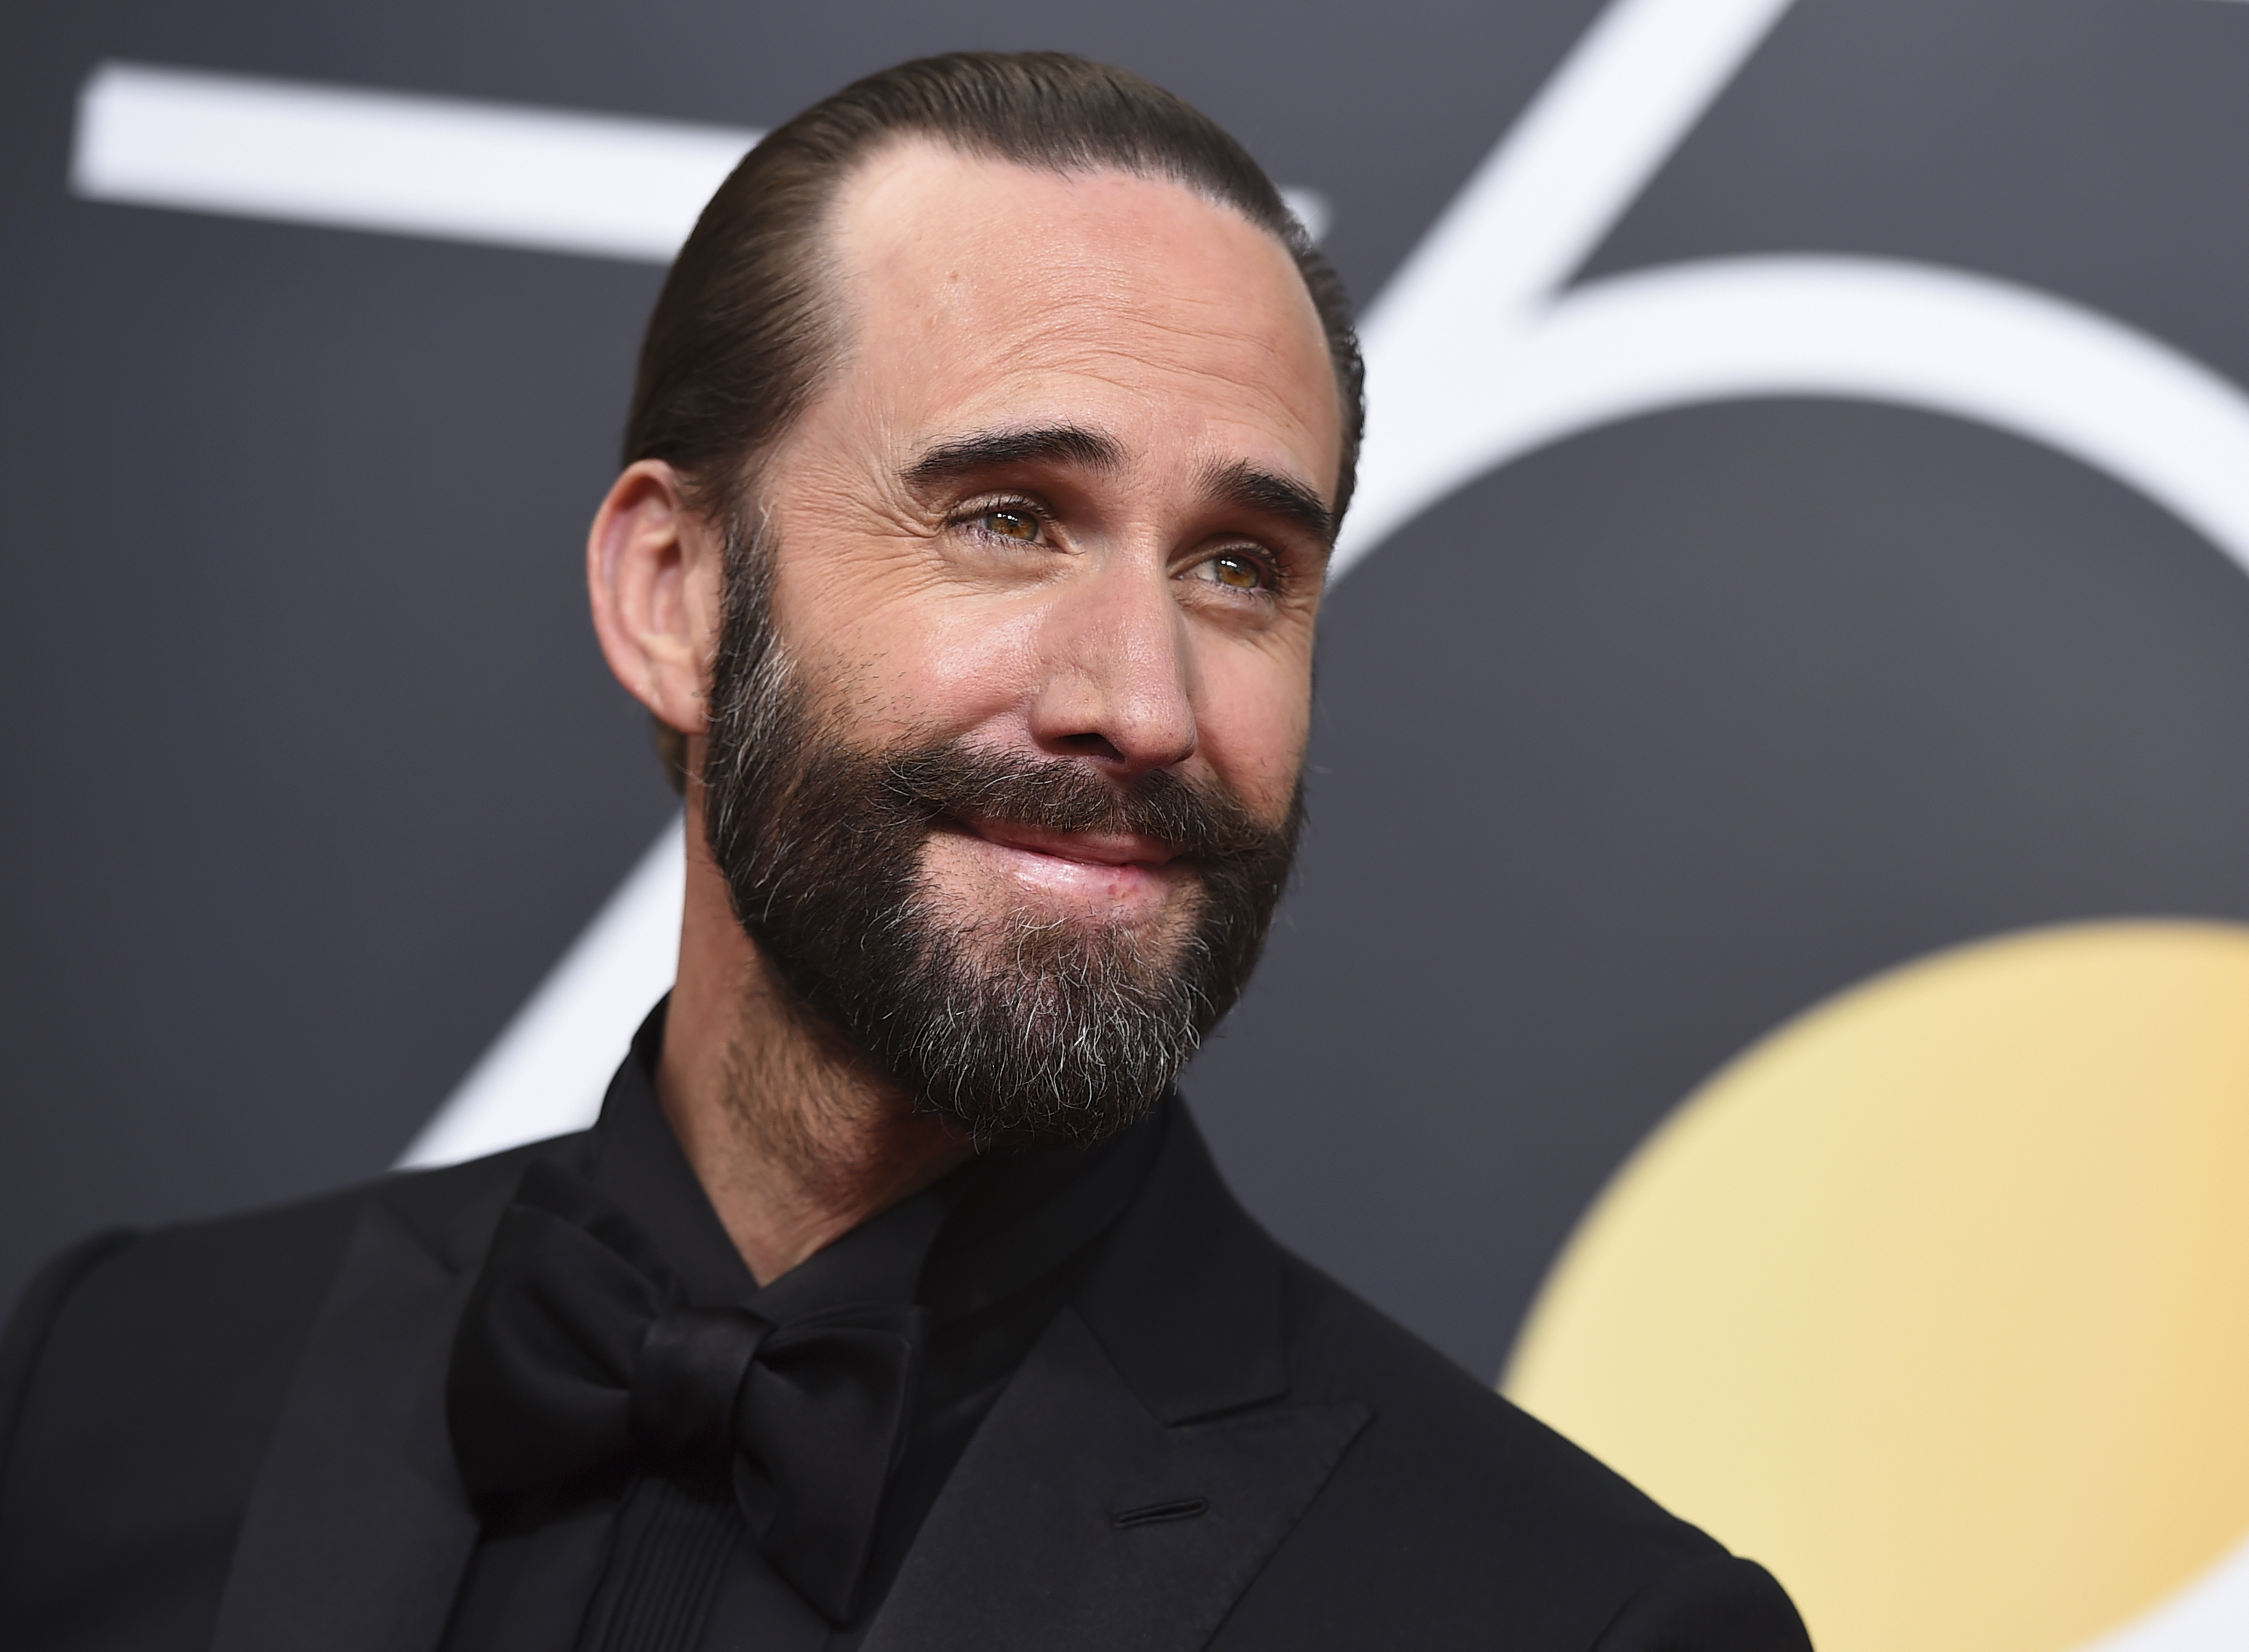 <div class='meta'><div class='origin-logo' data-origin='AP'></div><span class='caption-text' data-credit='Jordan Strauss/Invision/AP'>Joseph Fiennes arrives at the 75th annual Golden Globe Awards at the Beverly Hilton Hotel on Sunday, Jan. 7, 2018, in Beverly Hills, Calif.</span></div>